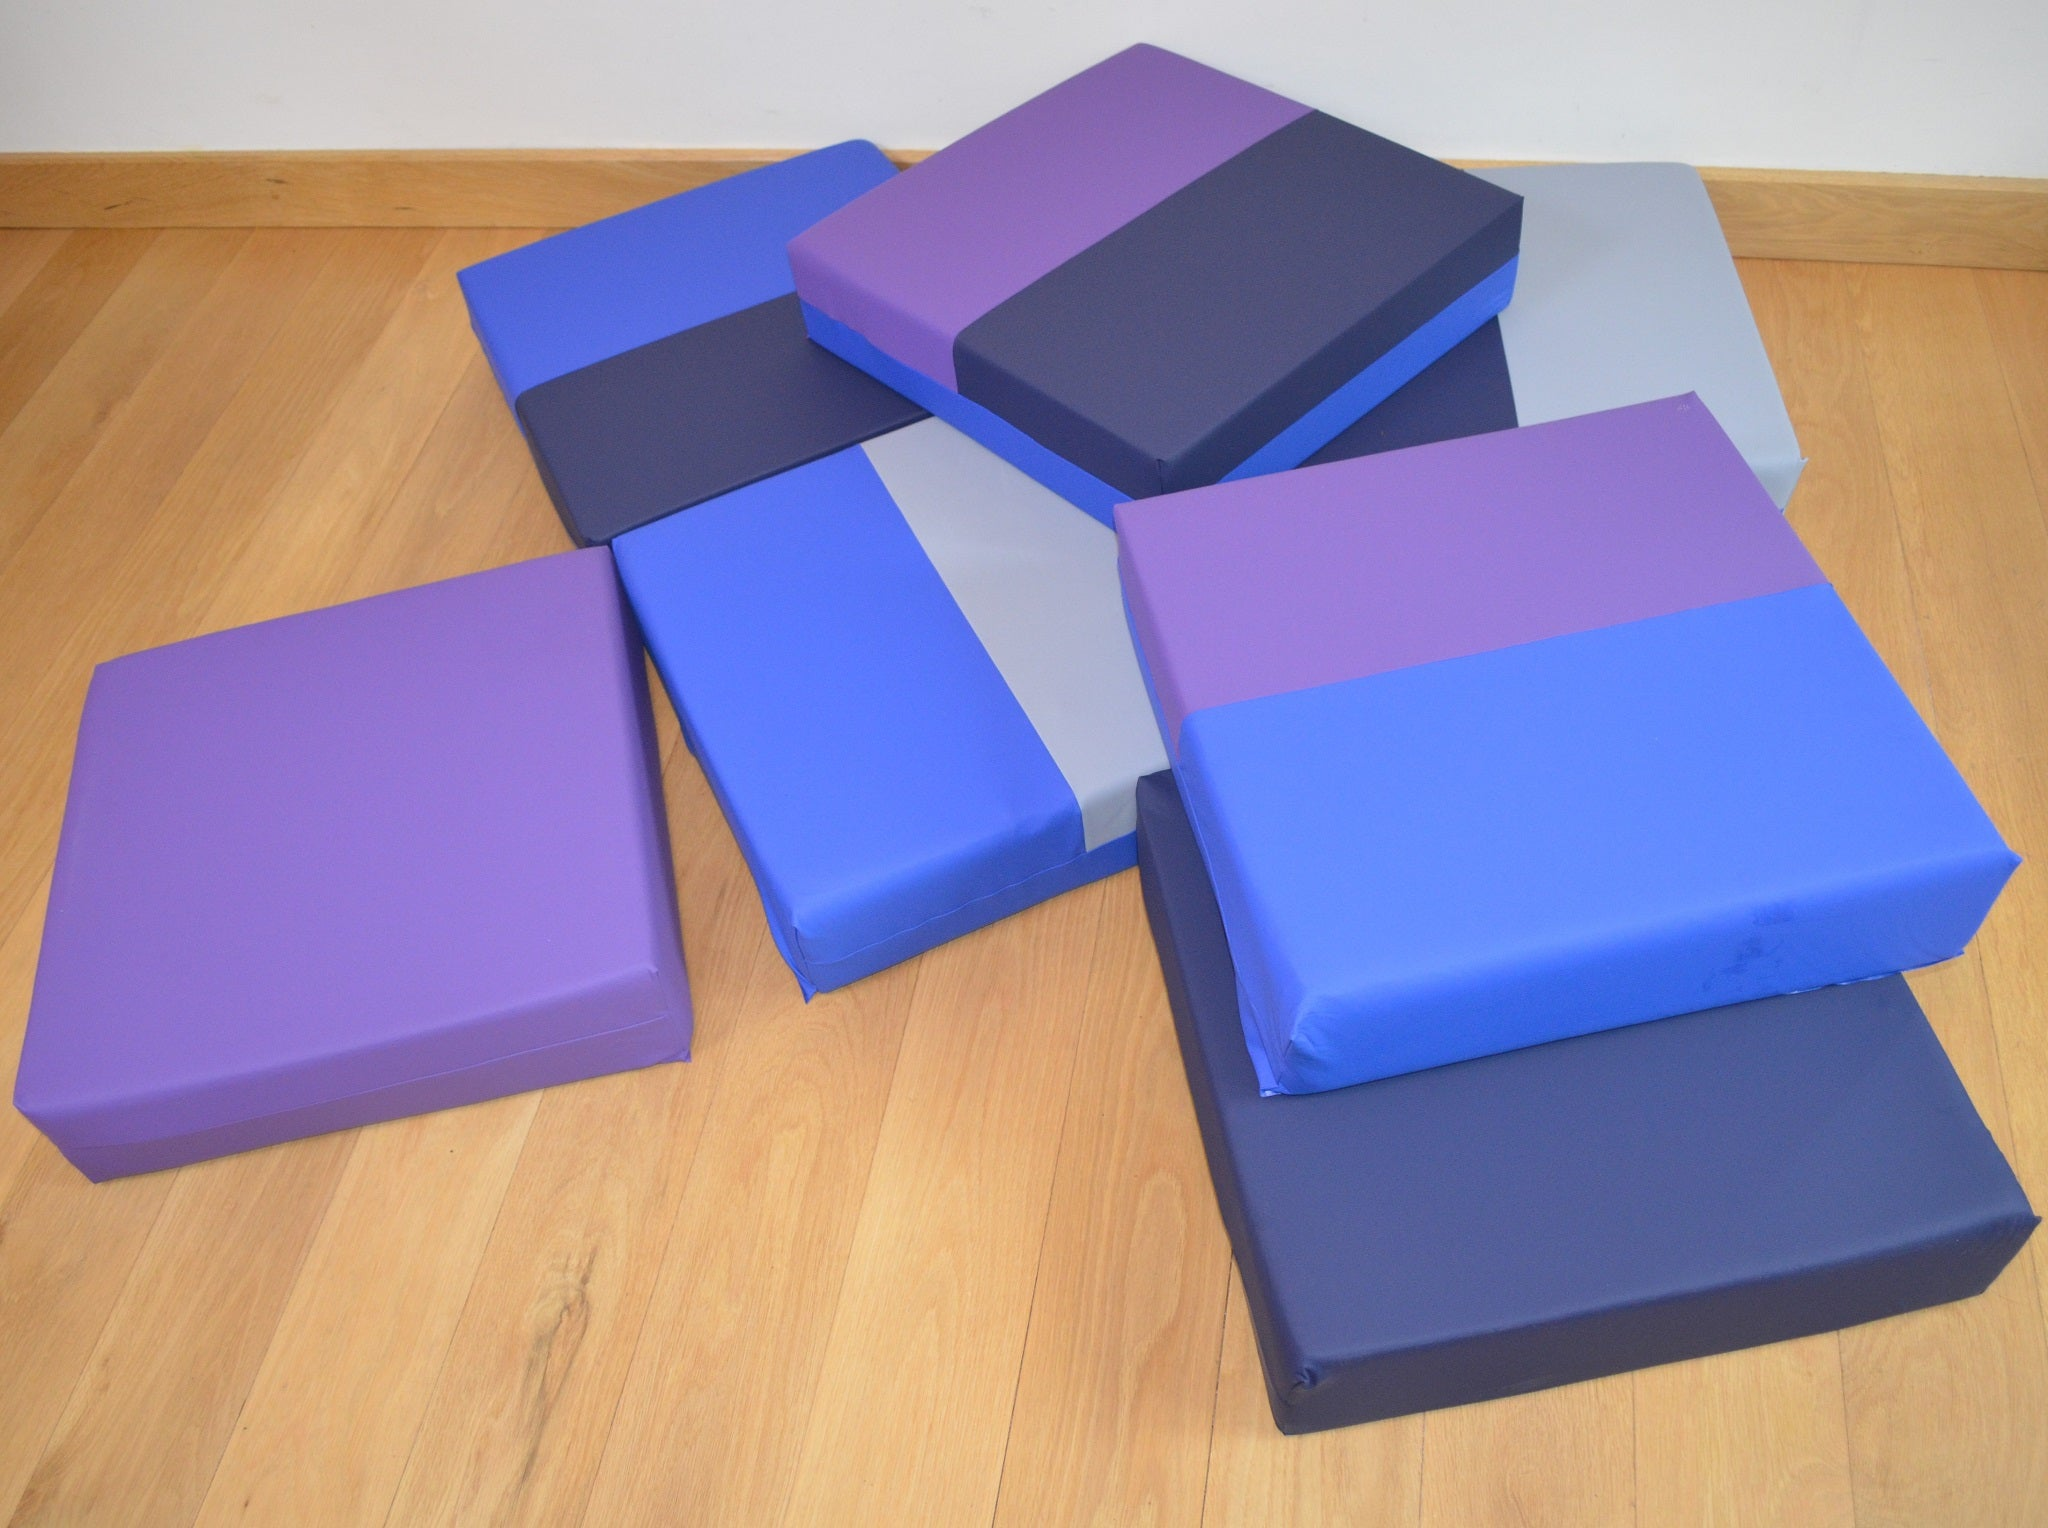 Balance block for proprioception